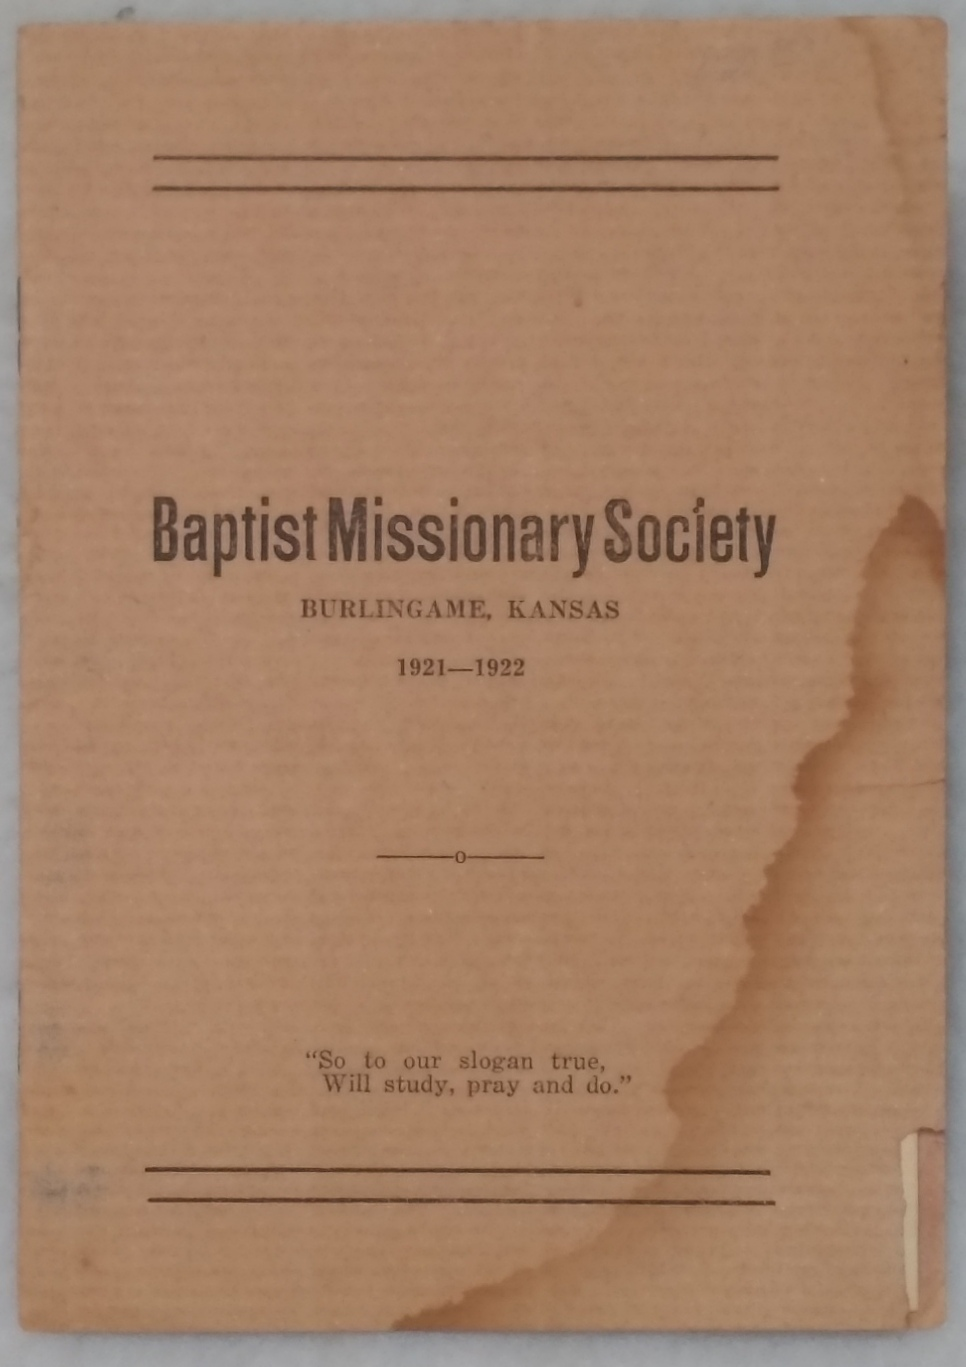 Image for Baptist Missionary Society, Burlingame, Kansas 1921-1922